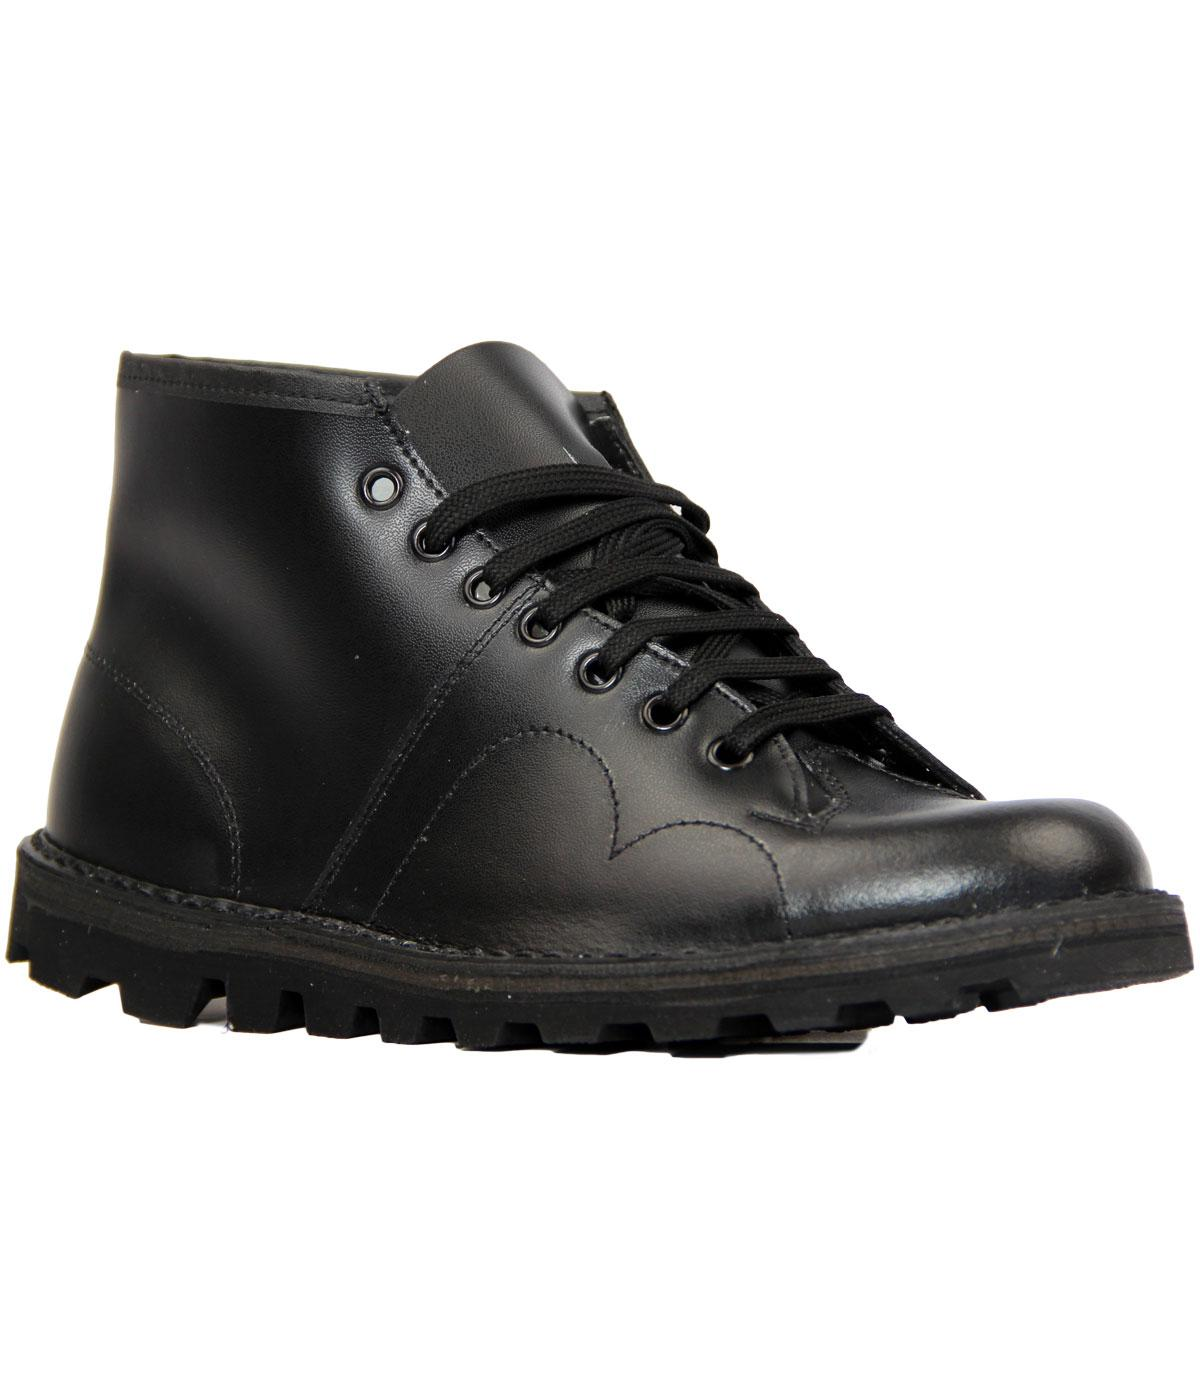 Retro Mod Smooth Leather Monkey Boots (Black)